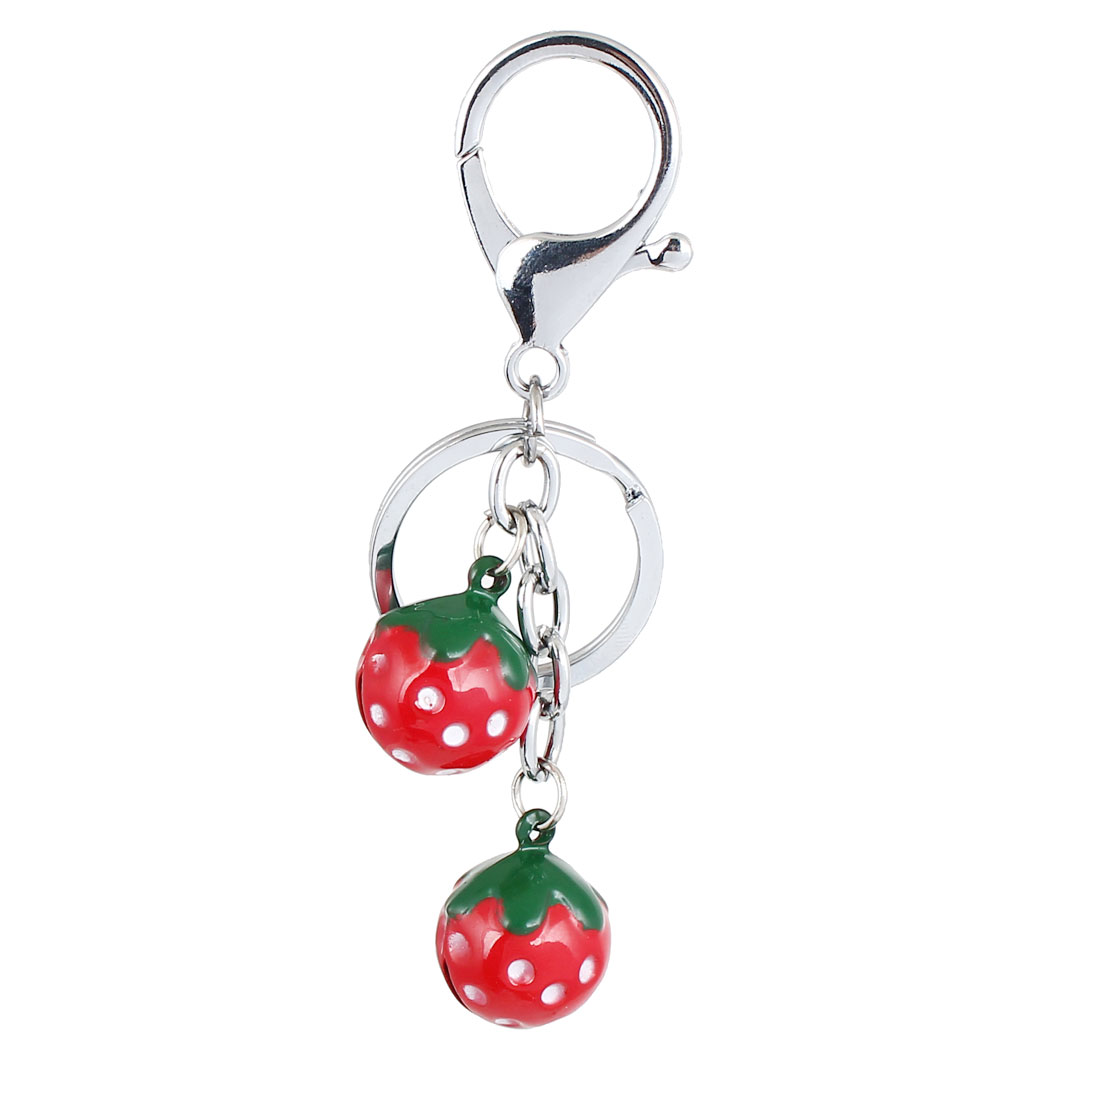 Strawberry Dangling Bells Decor Keyring Hanging Pendant